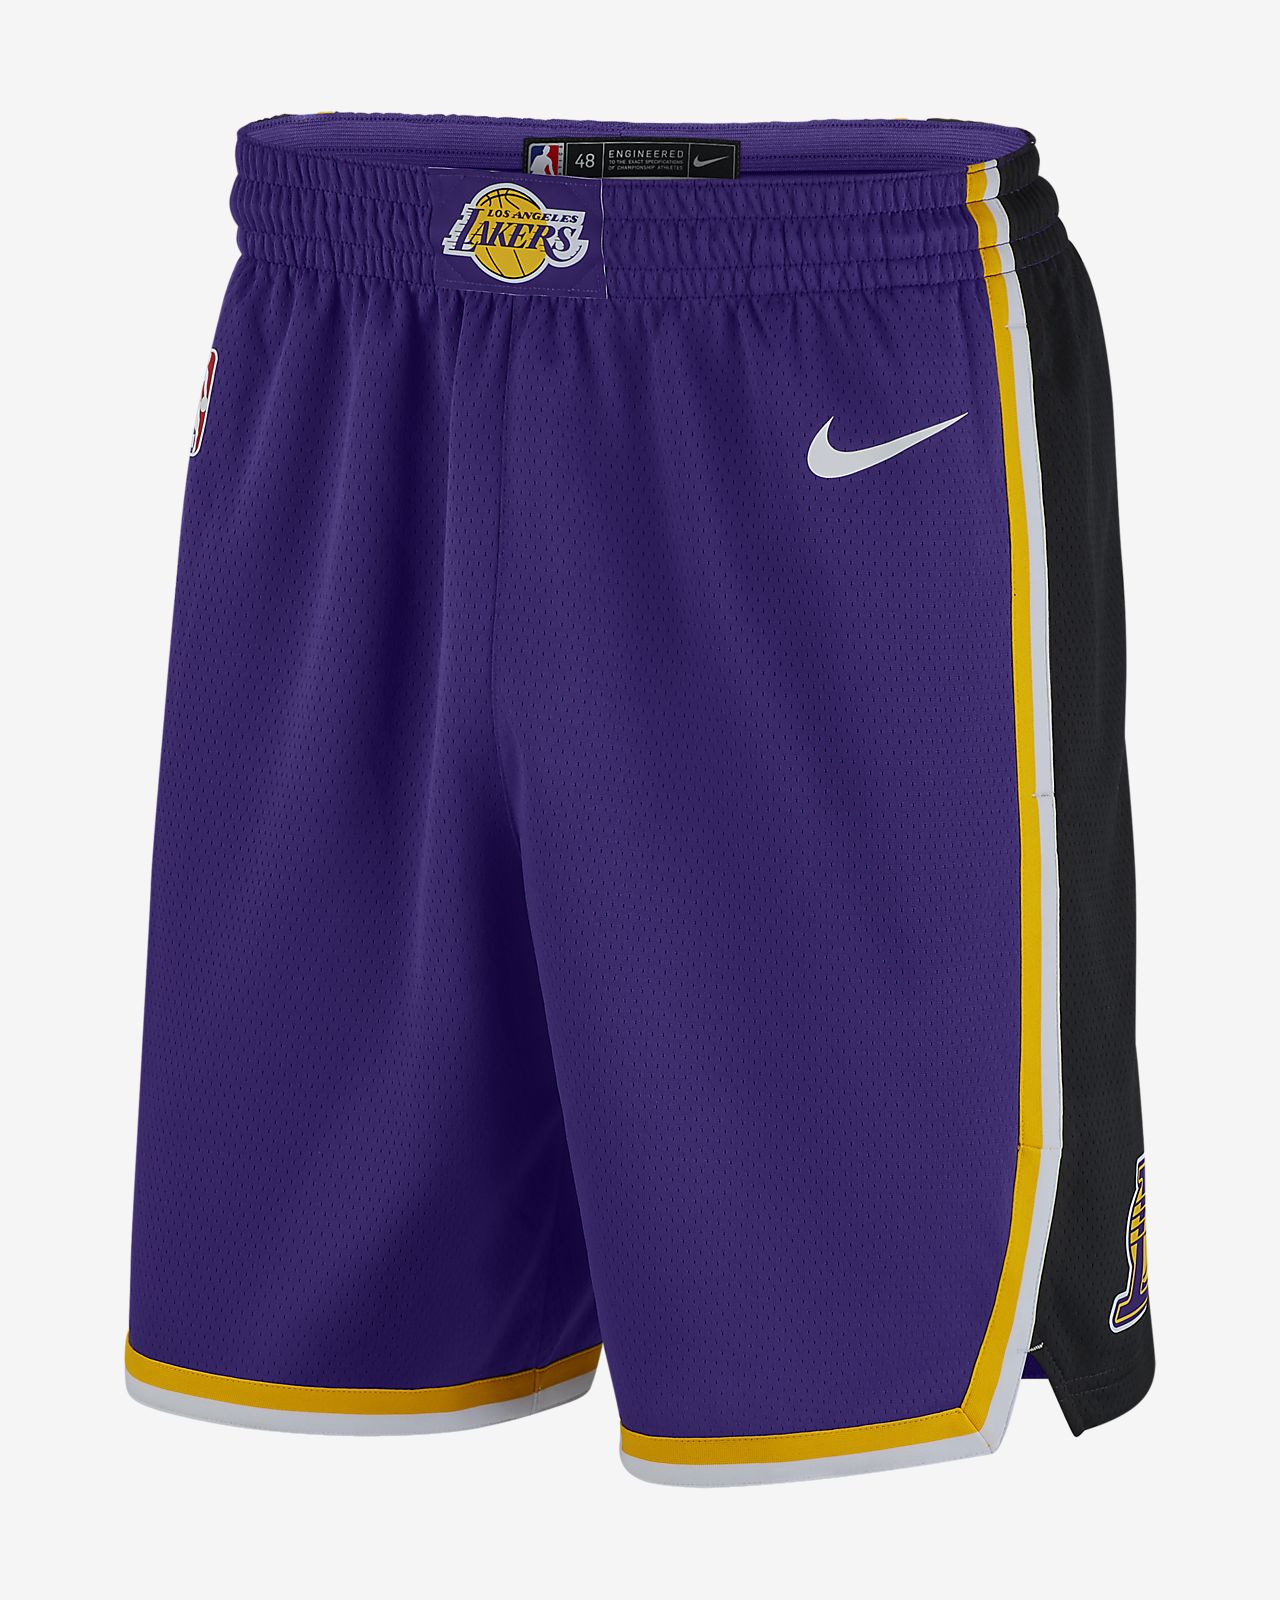 a170279eed2 Los Angeles Lakers Statement Edition Swingman Men s Nike NBA Shorts ...